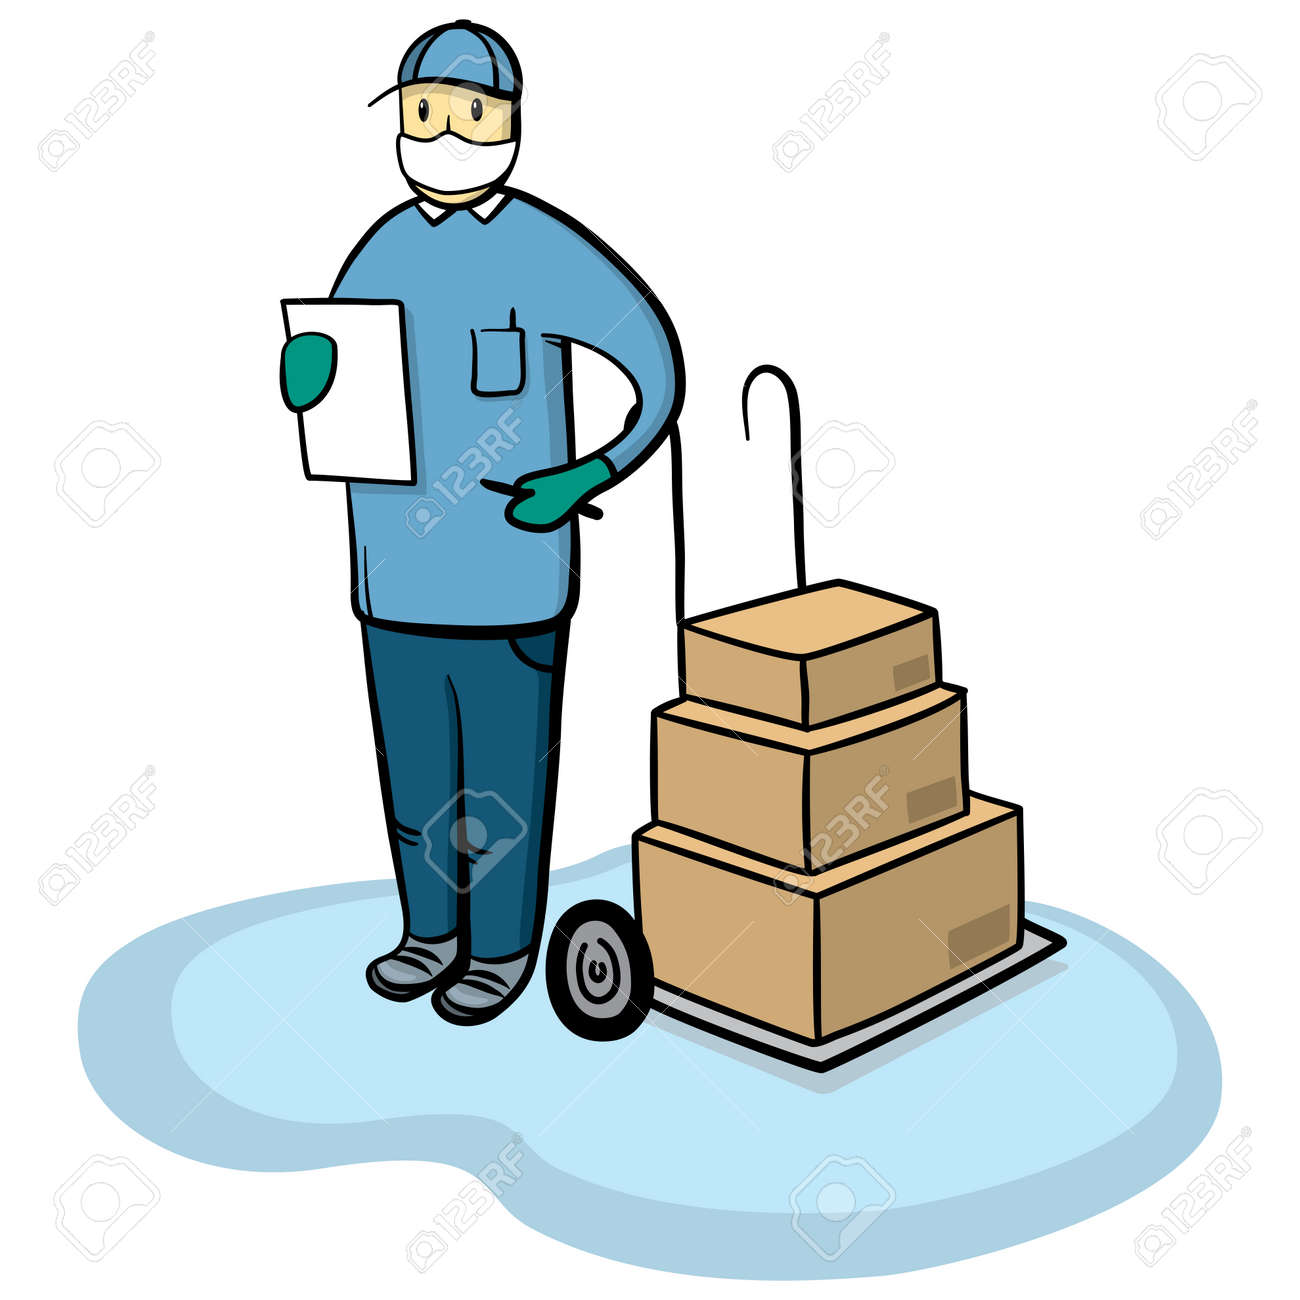 Delivery courier man with medical protective mask and gloves. Safe cargo delivery during coronavirus pandemic concept vector illustration. - 160685410